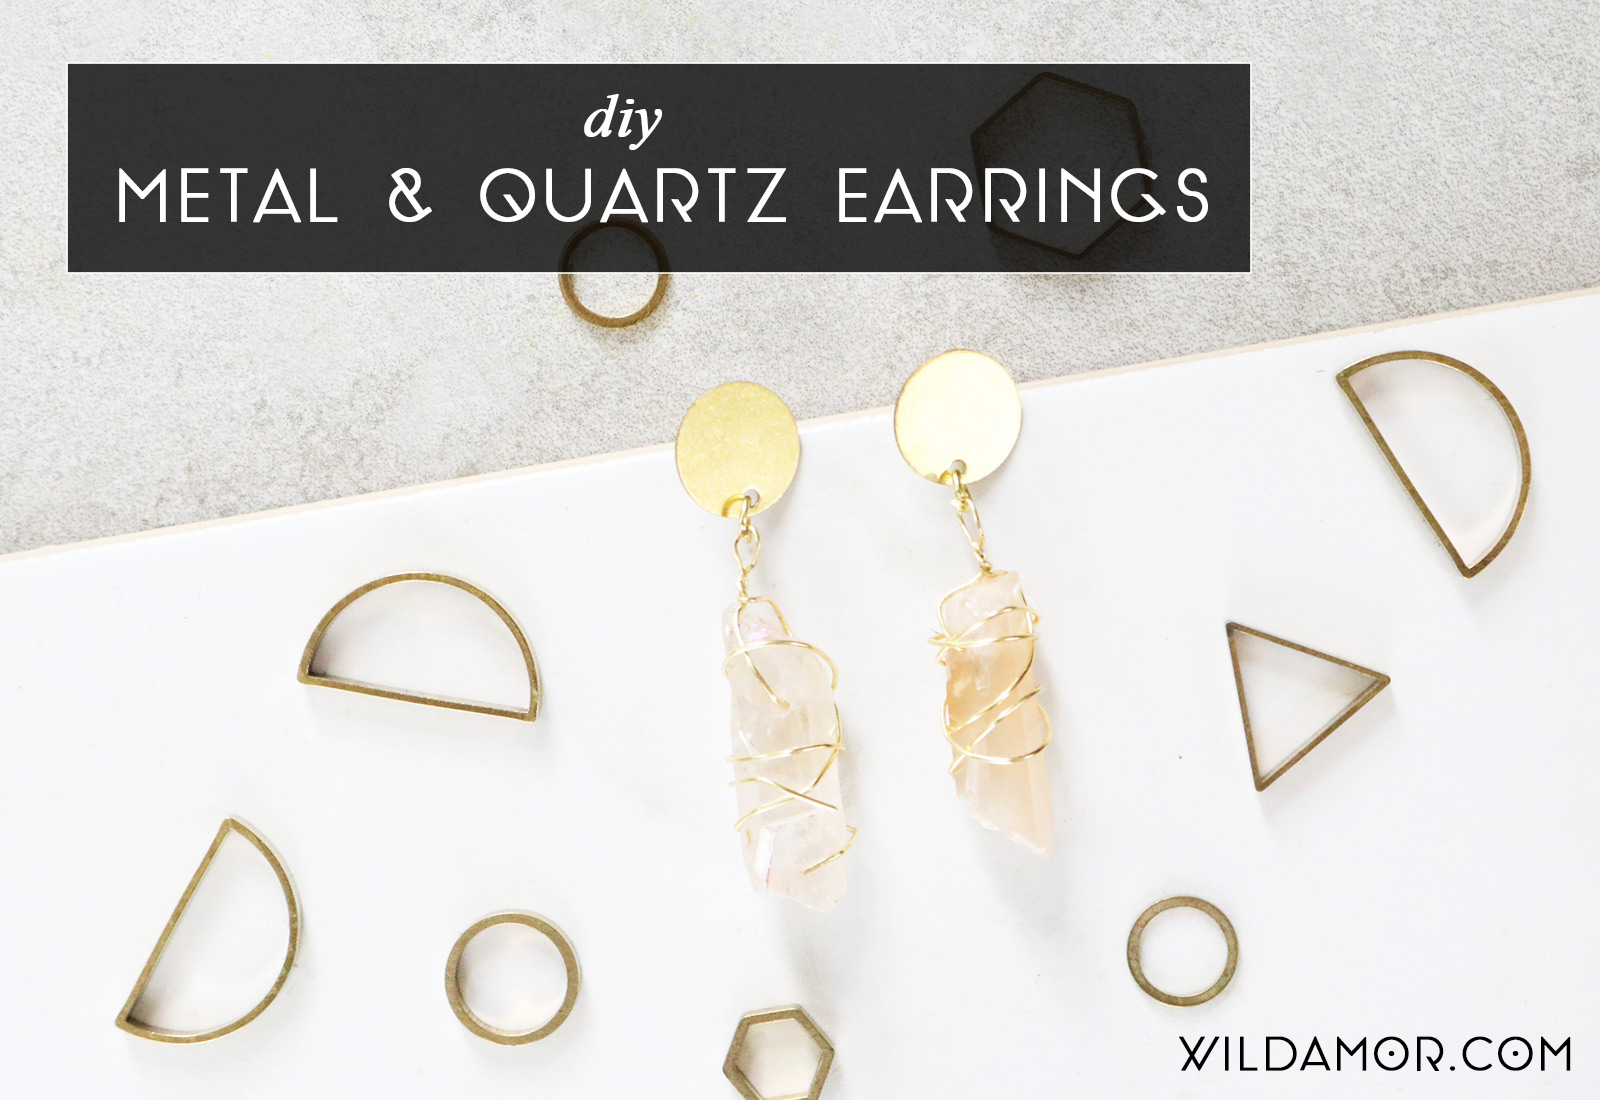 DIY Metal and Quartz Earrings